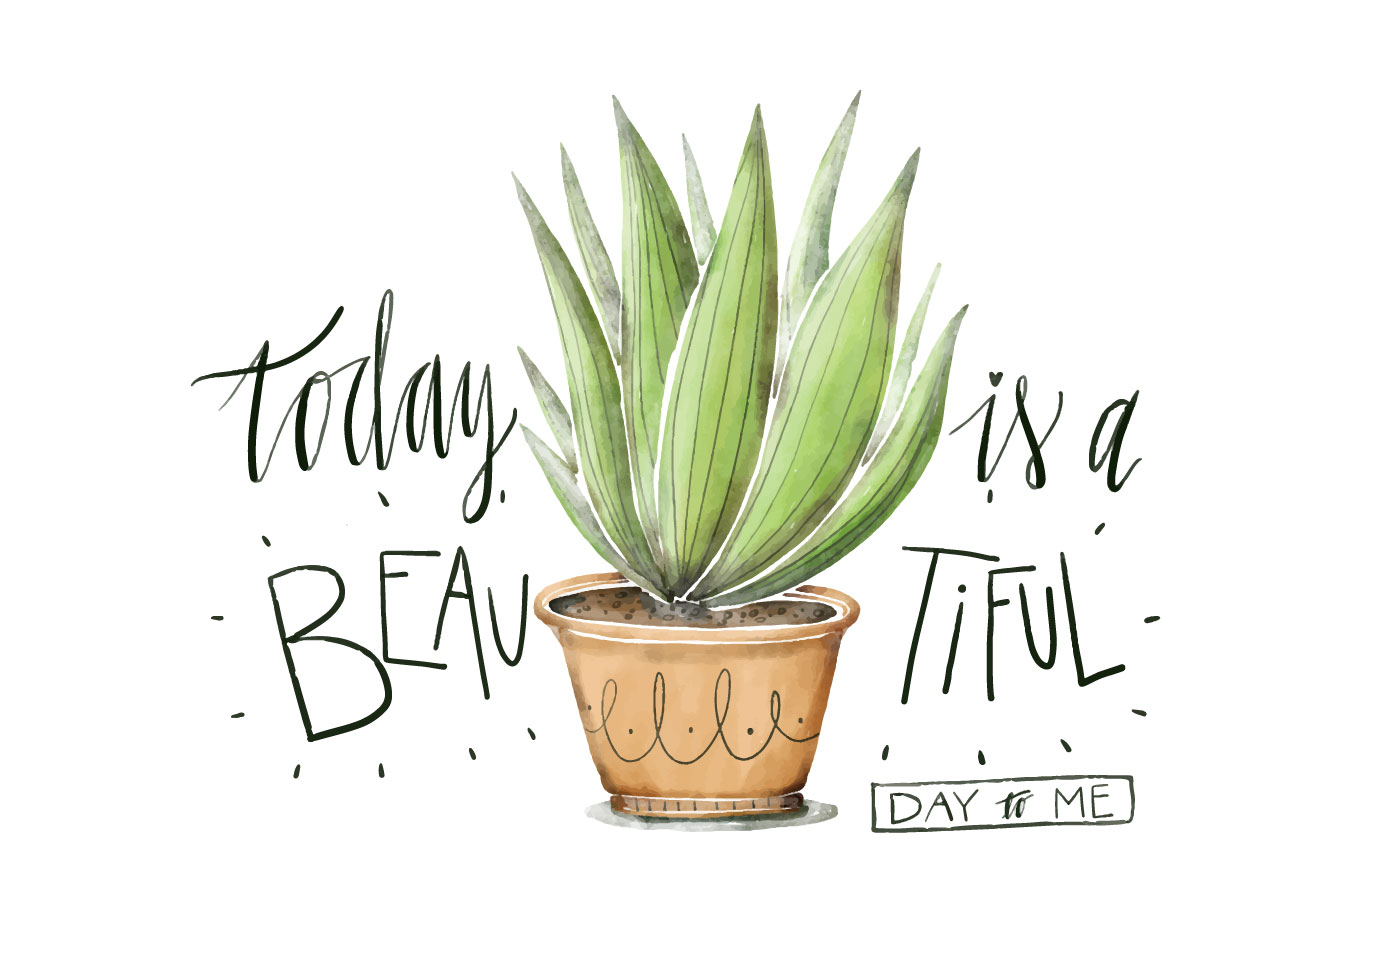 Cute Plant Illustration Watercolor With Lettering Quote Download Free Vectors Clipart Graphics Vector Art